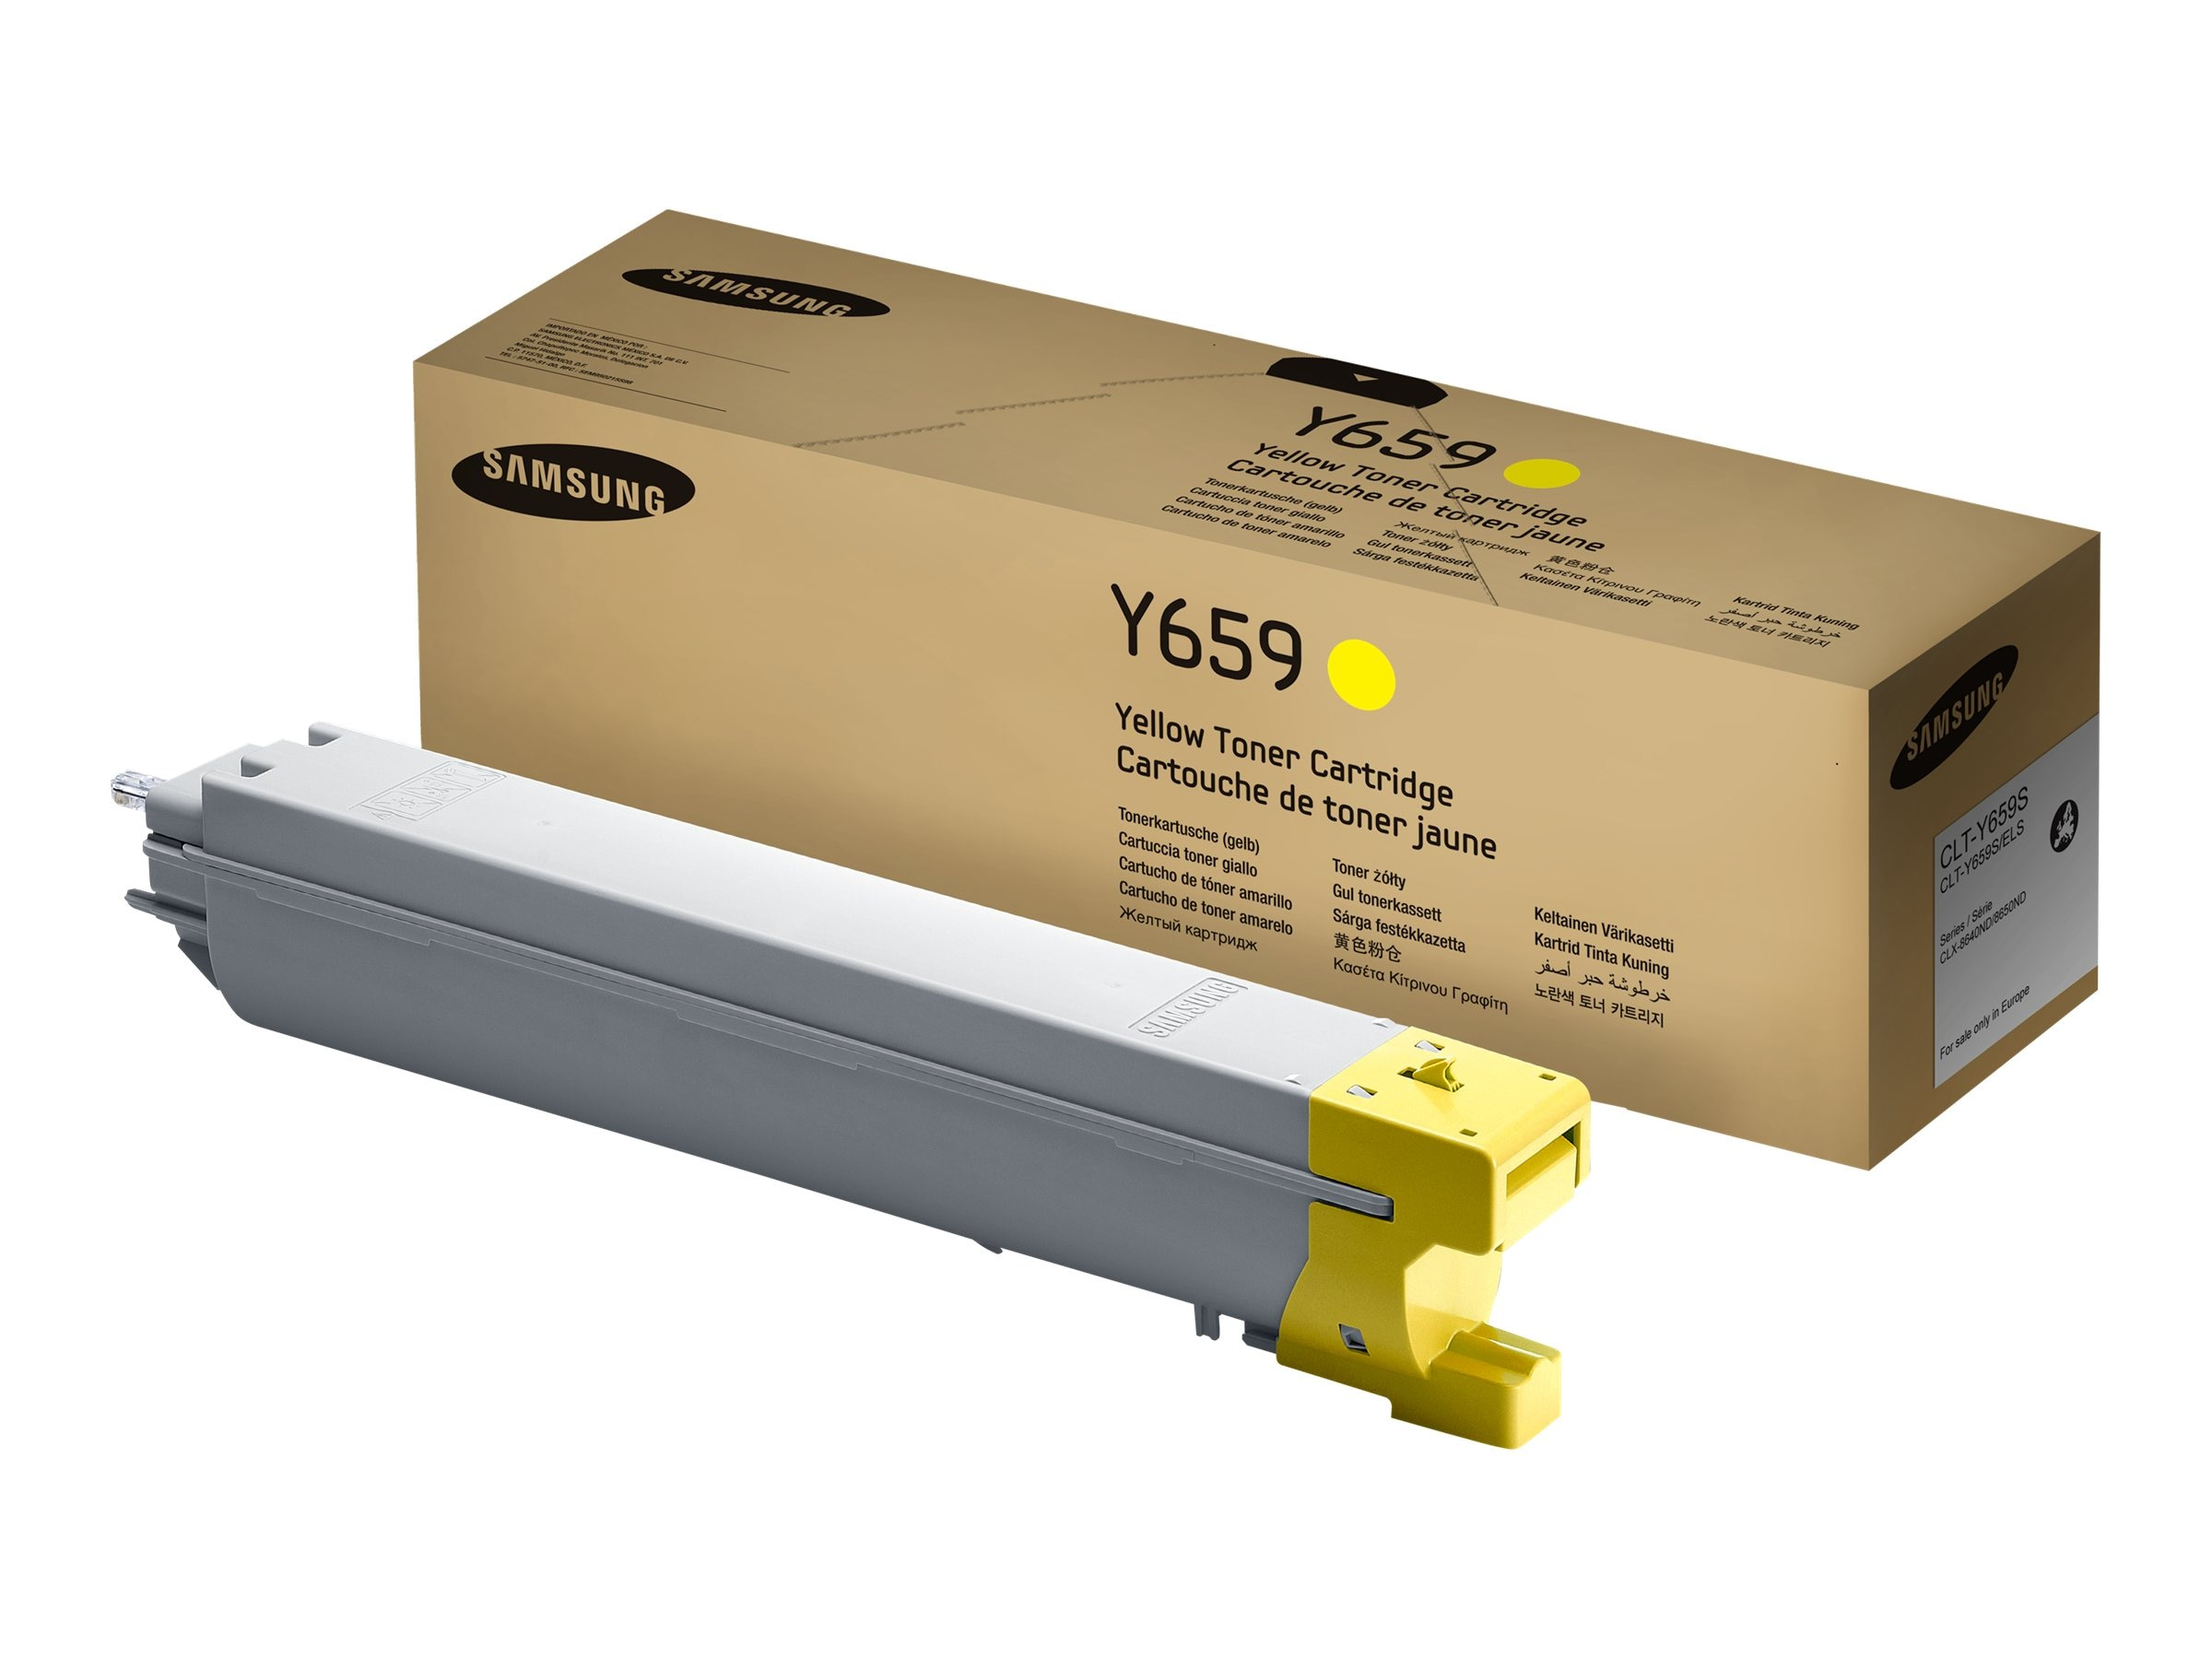 Samsung Yellow Toner Cartridge for CLX-8640ND & CLX-8650ND Color Multifunction Laser Printers